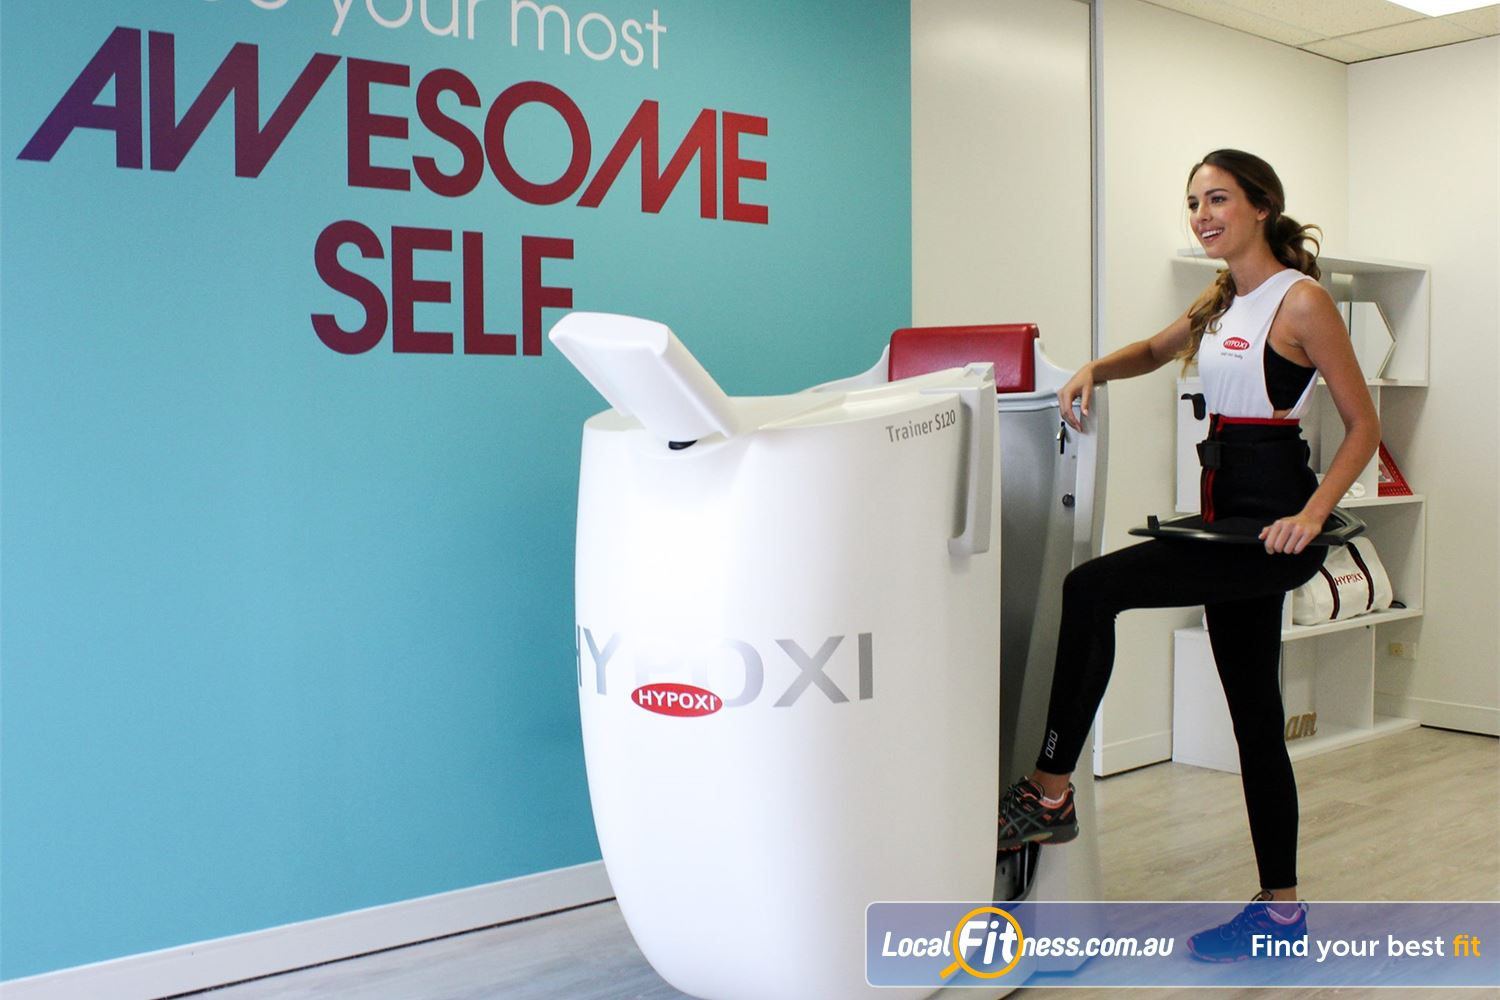 HYPOXI Weight Loss Newtown Average client loses 26cm in first 4 weeks at HYPOXI Newtown.